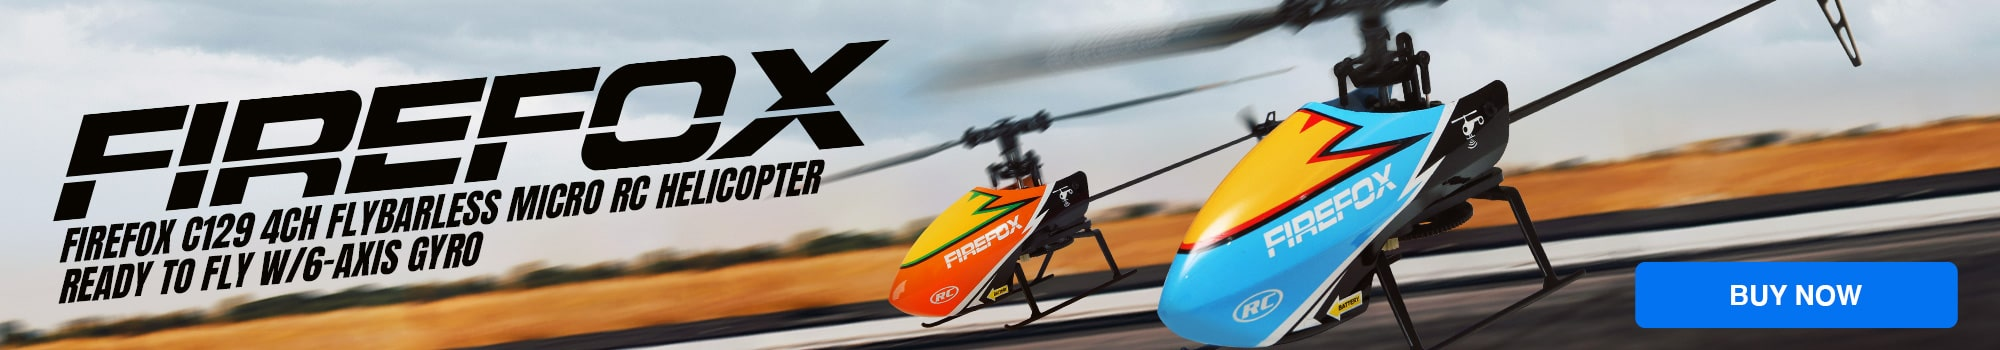 Firefox C129 Flybarless Micro RC Helicopter - Buy Now!